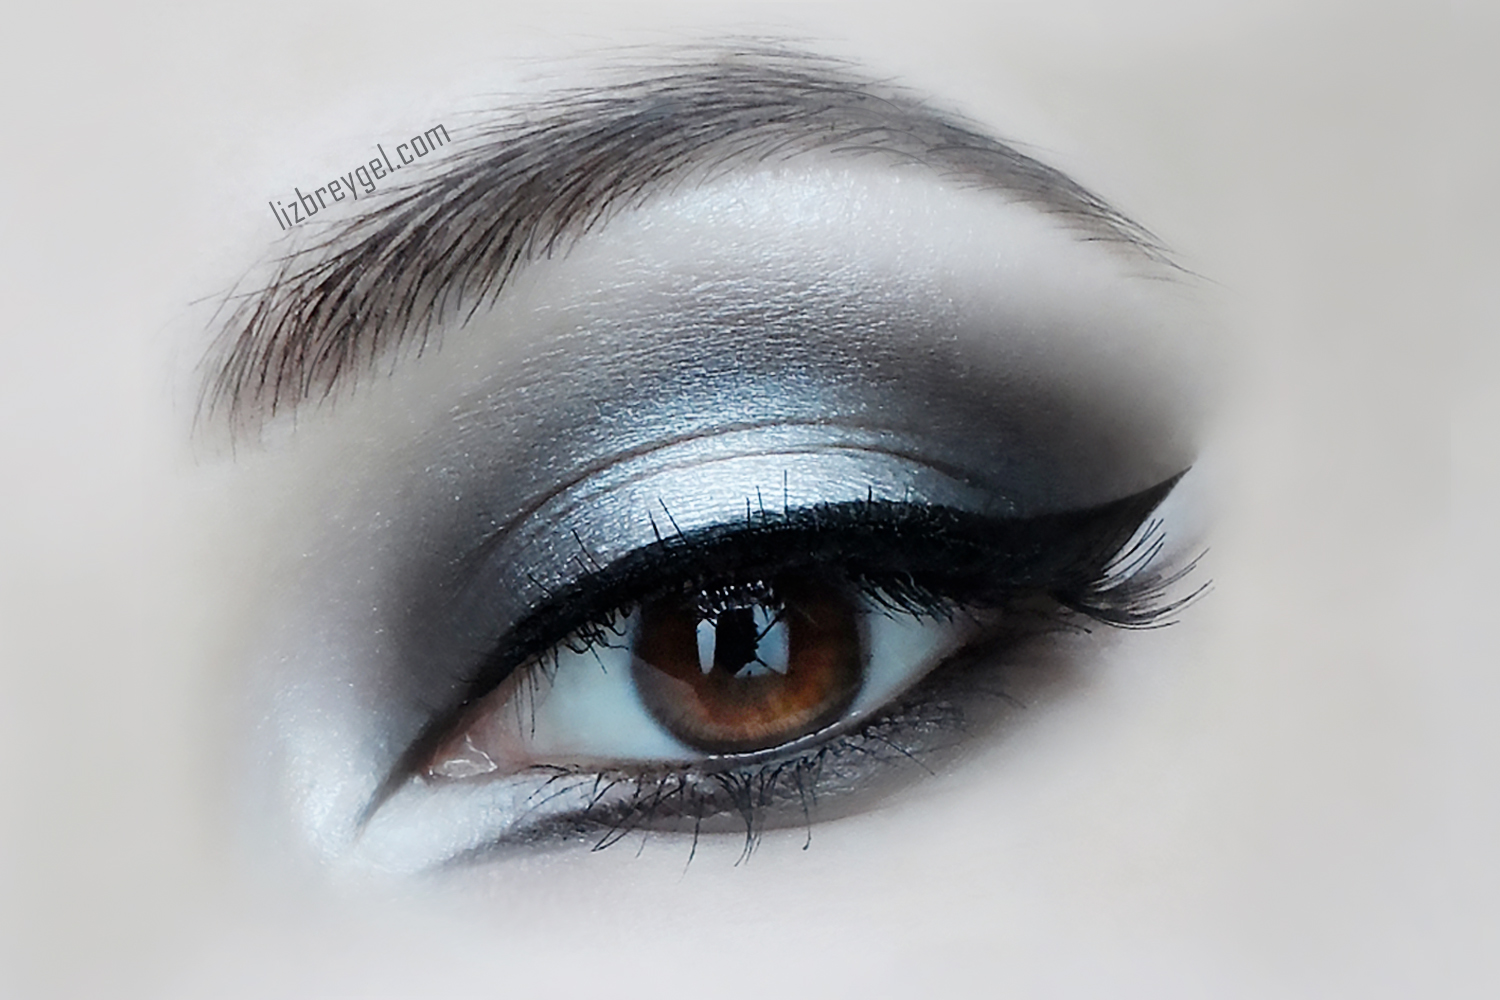 a close-up picture of an eye with dramatic Gothic makeup look